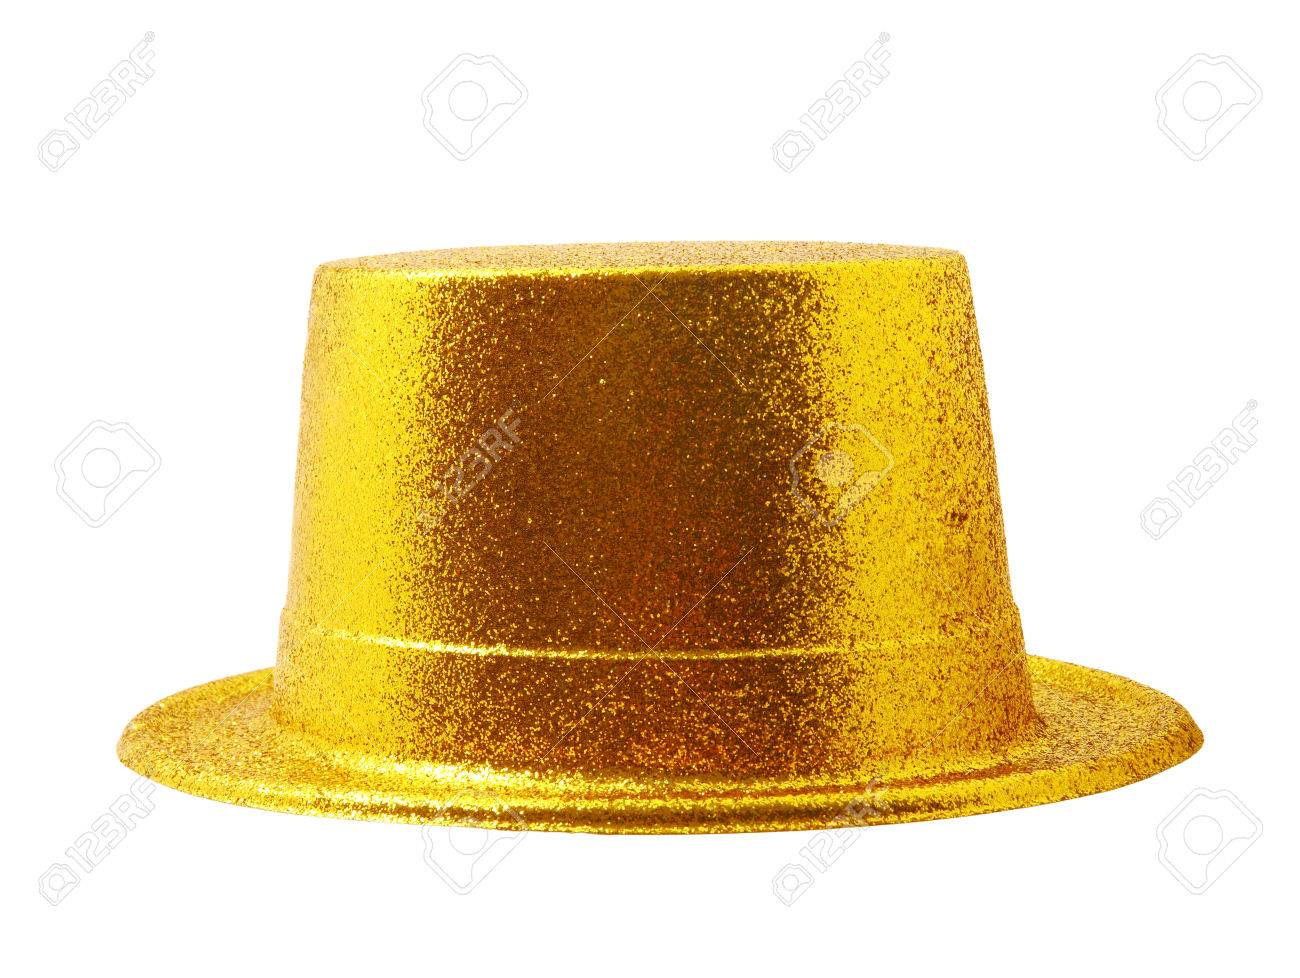 dde85876 Stock Photo - Yellow party hat isolated on the white background, clipping  path.